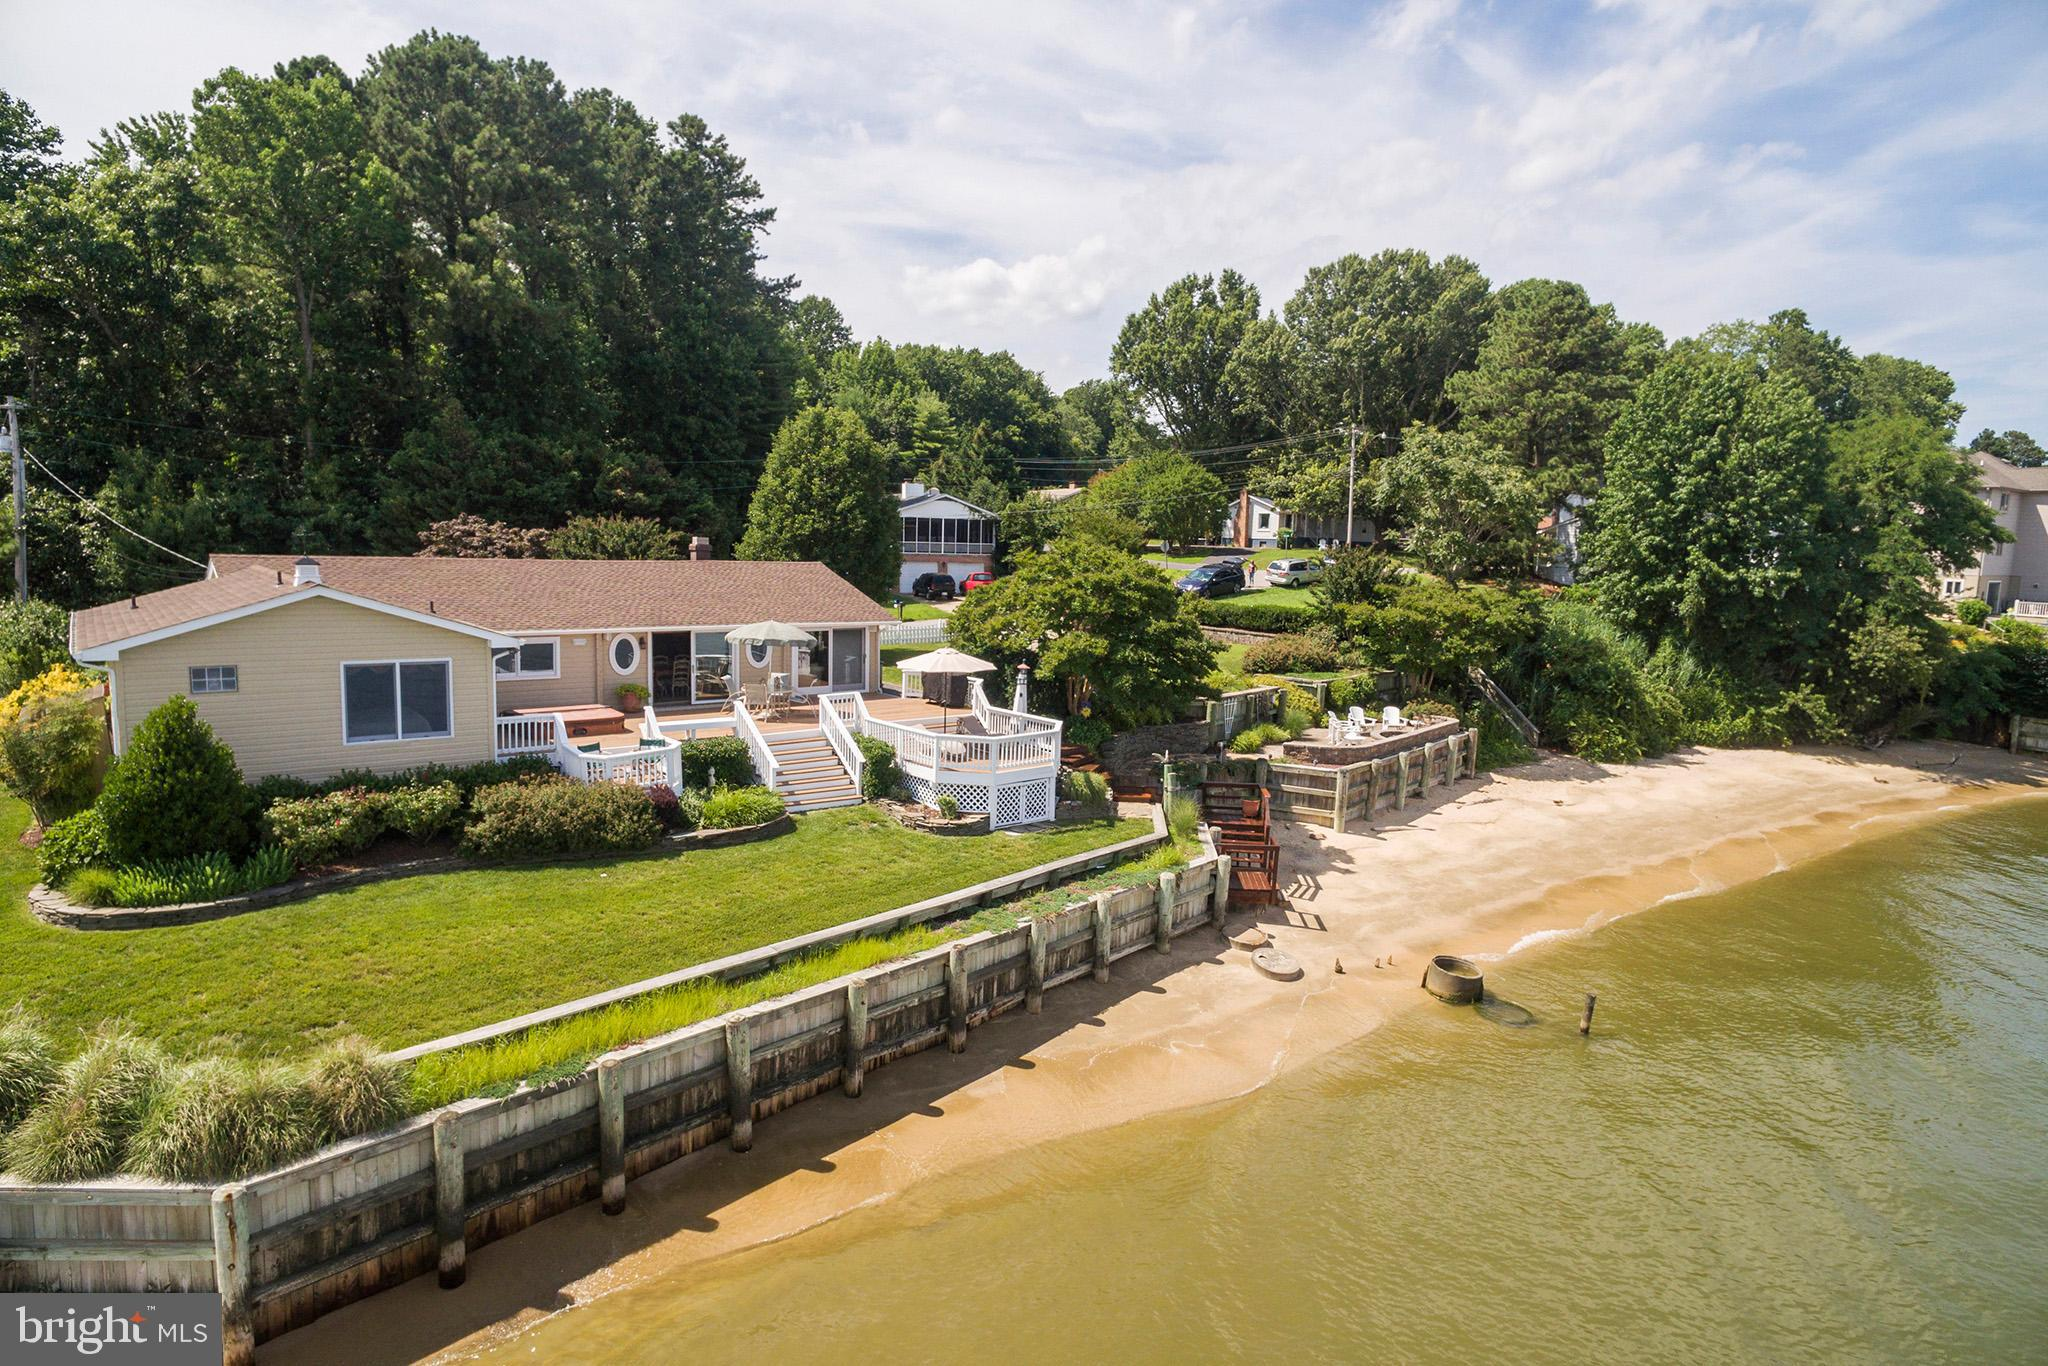 12860 BAY DRIVE, LUSBY, MD 20657